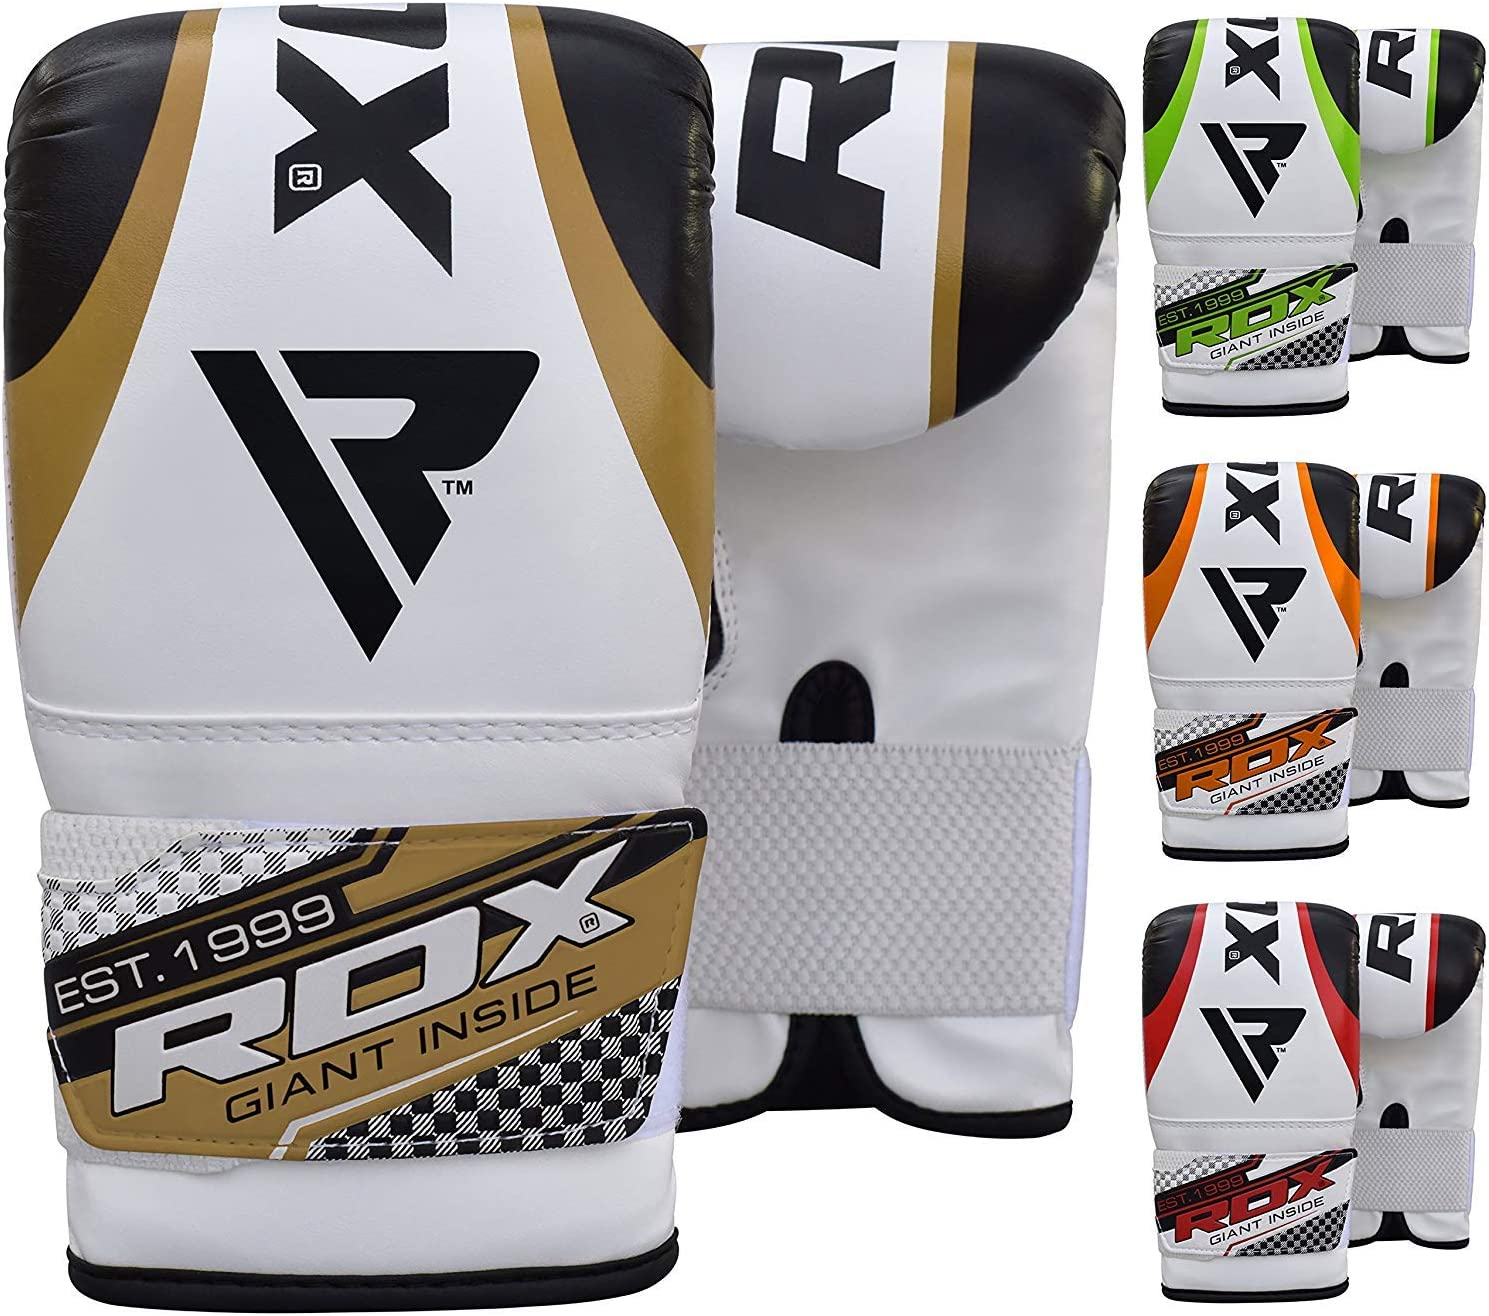 Ideal for Thai pad MMA Martial Arts Focus Pads and Double End Speed Ball Workout Maya Hide Leather Punch Mitts for Boxing Kickboxing RDX Bag Gloves for Heavy Punching Training Muay Thai